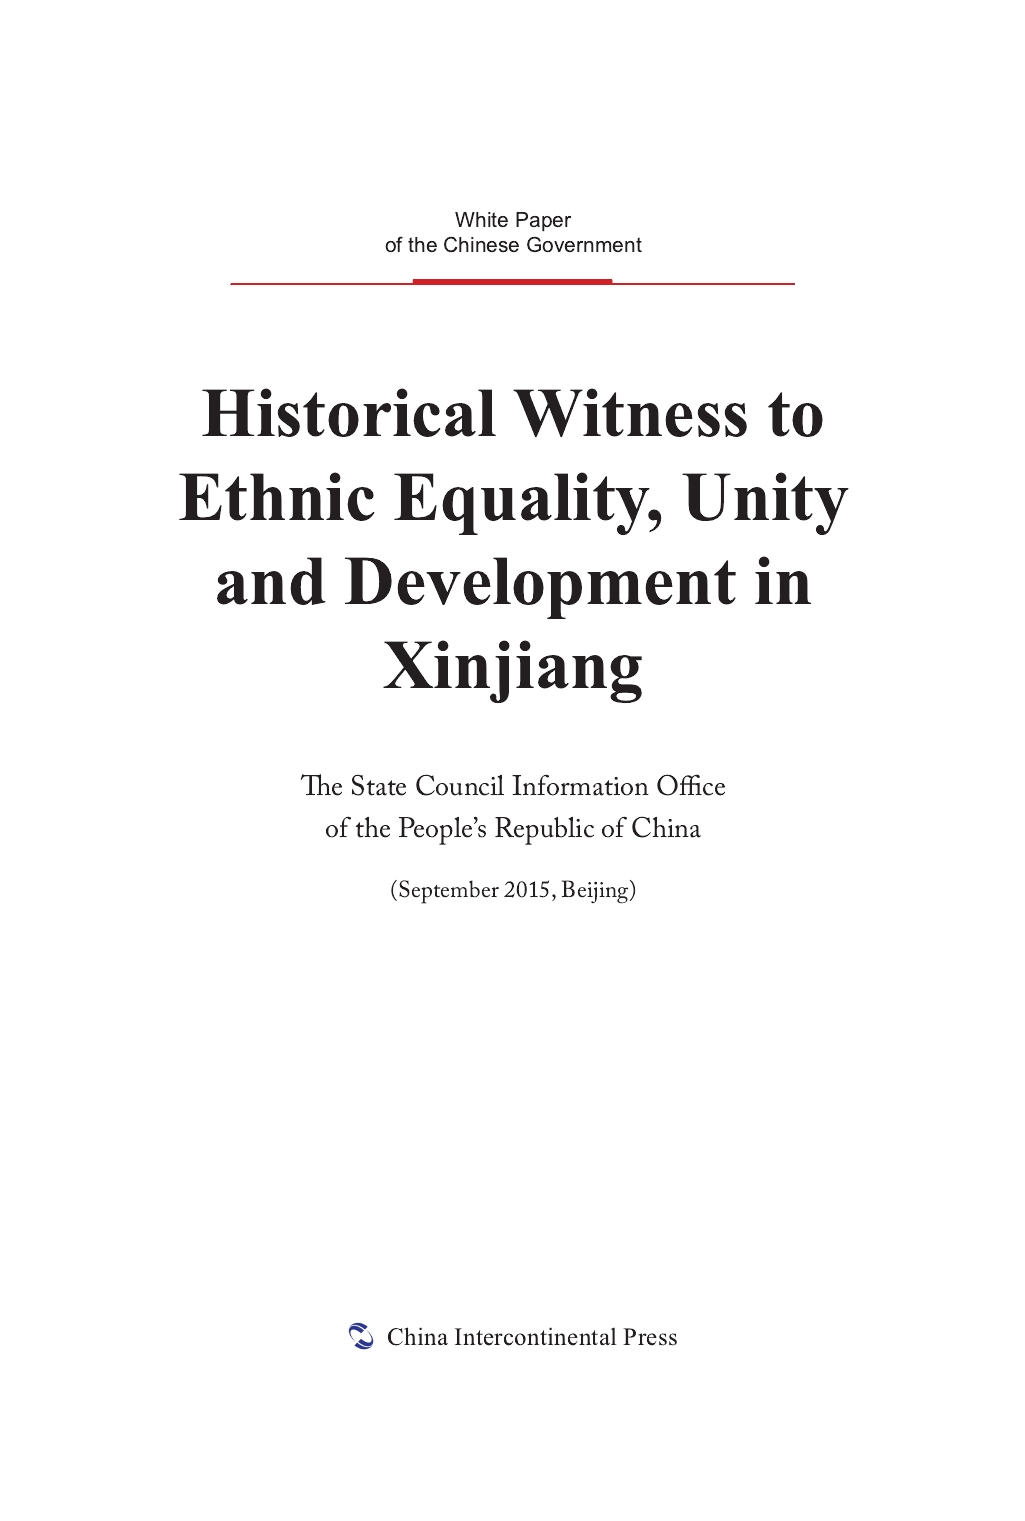 Historical Witness to Ethnic Equality,Unity and Development in Xinjiang